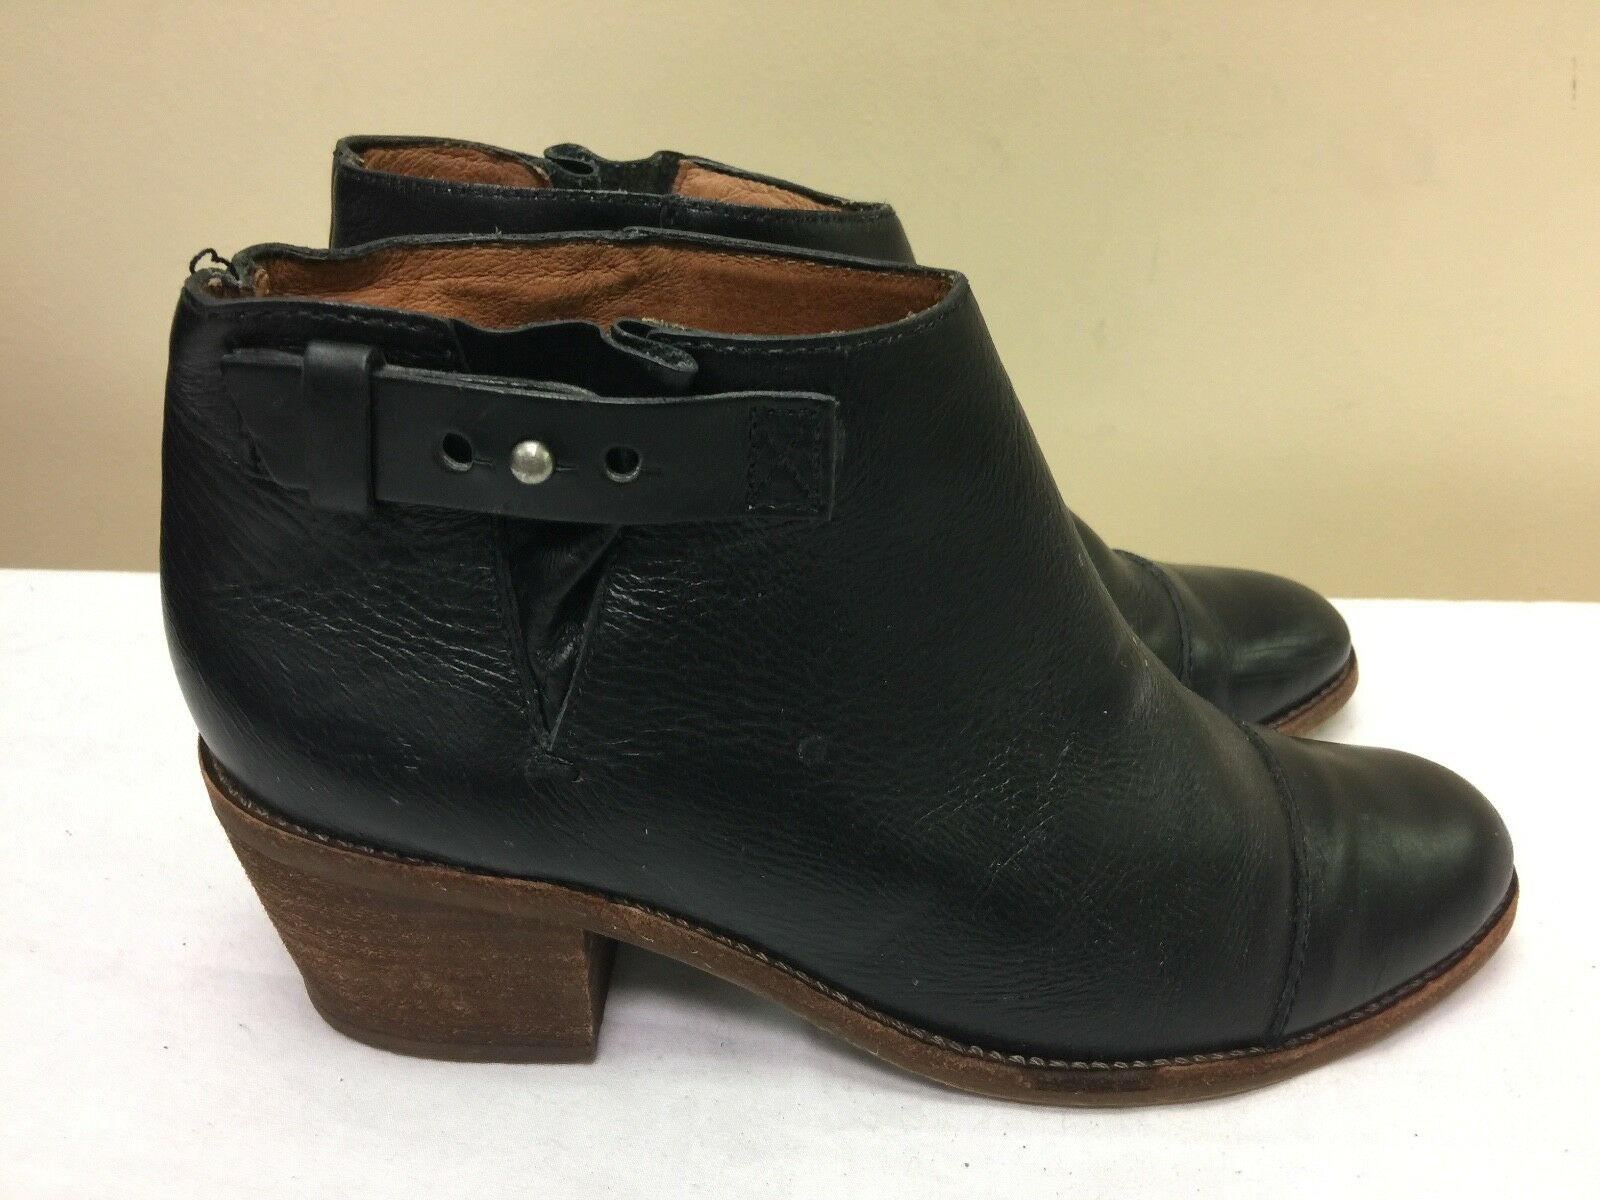 MADWELL  black leather ankle women boots size US 6.5M